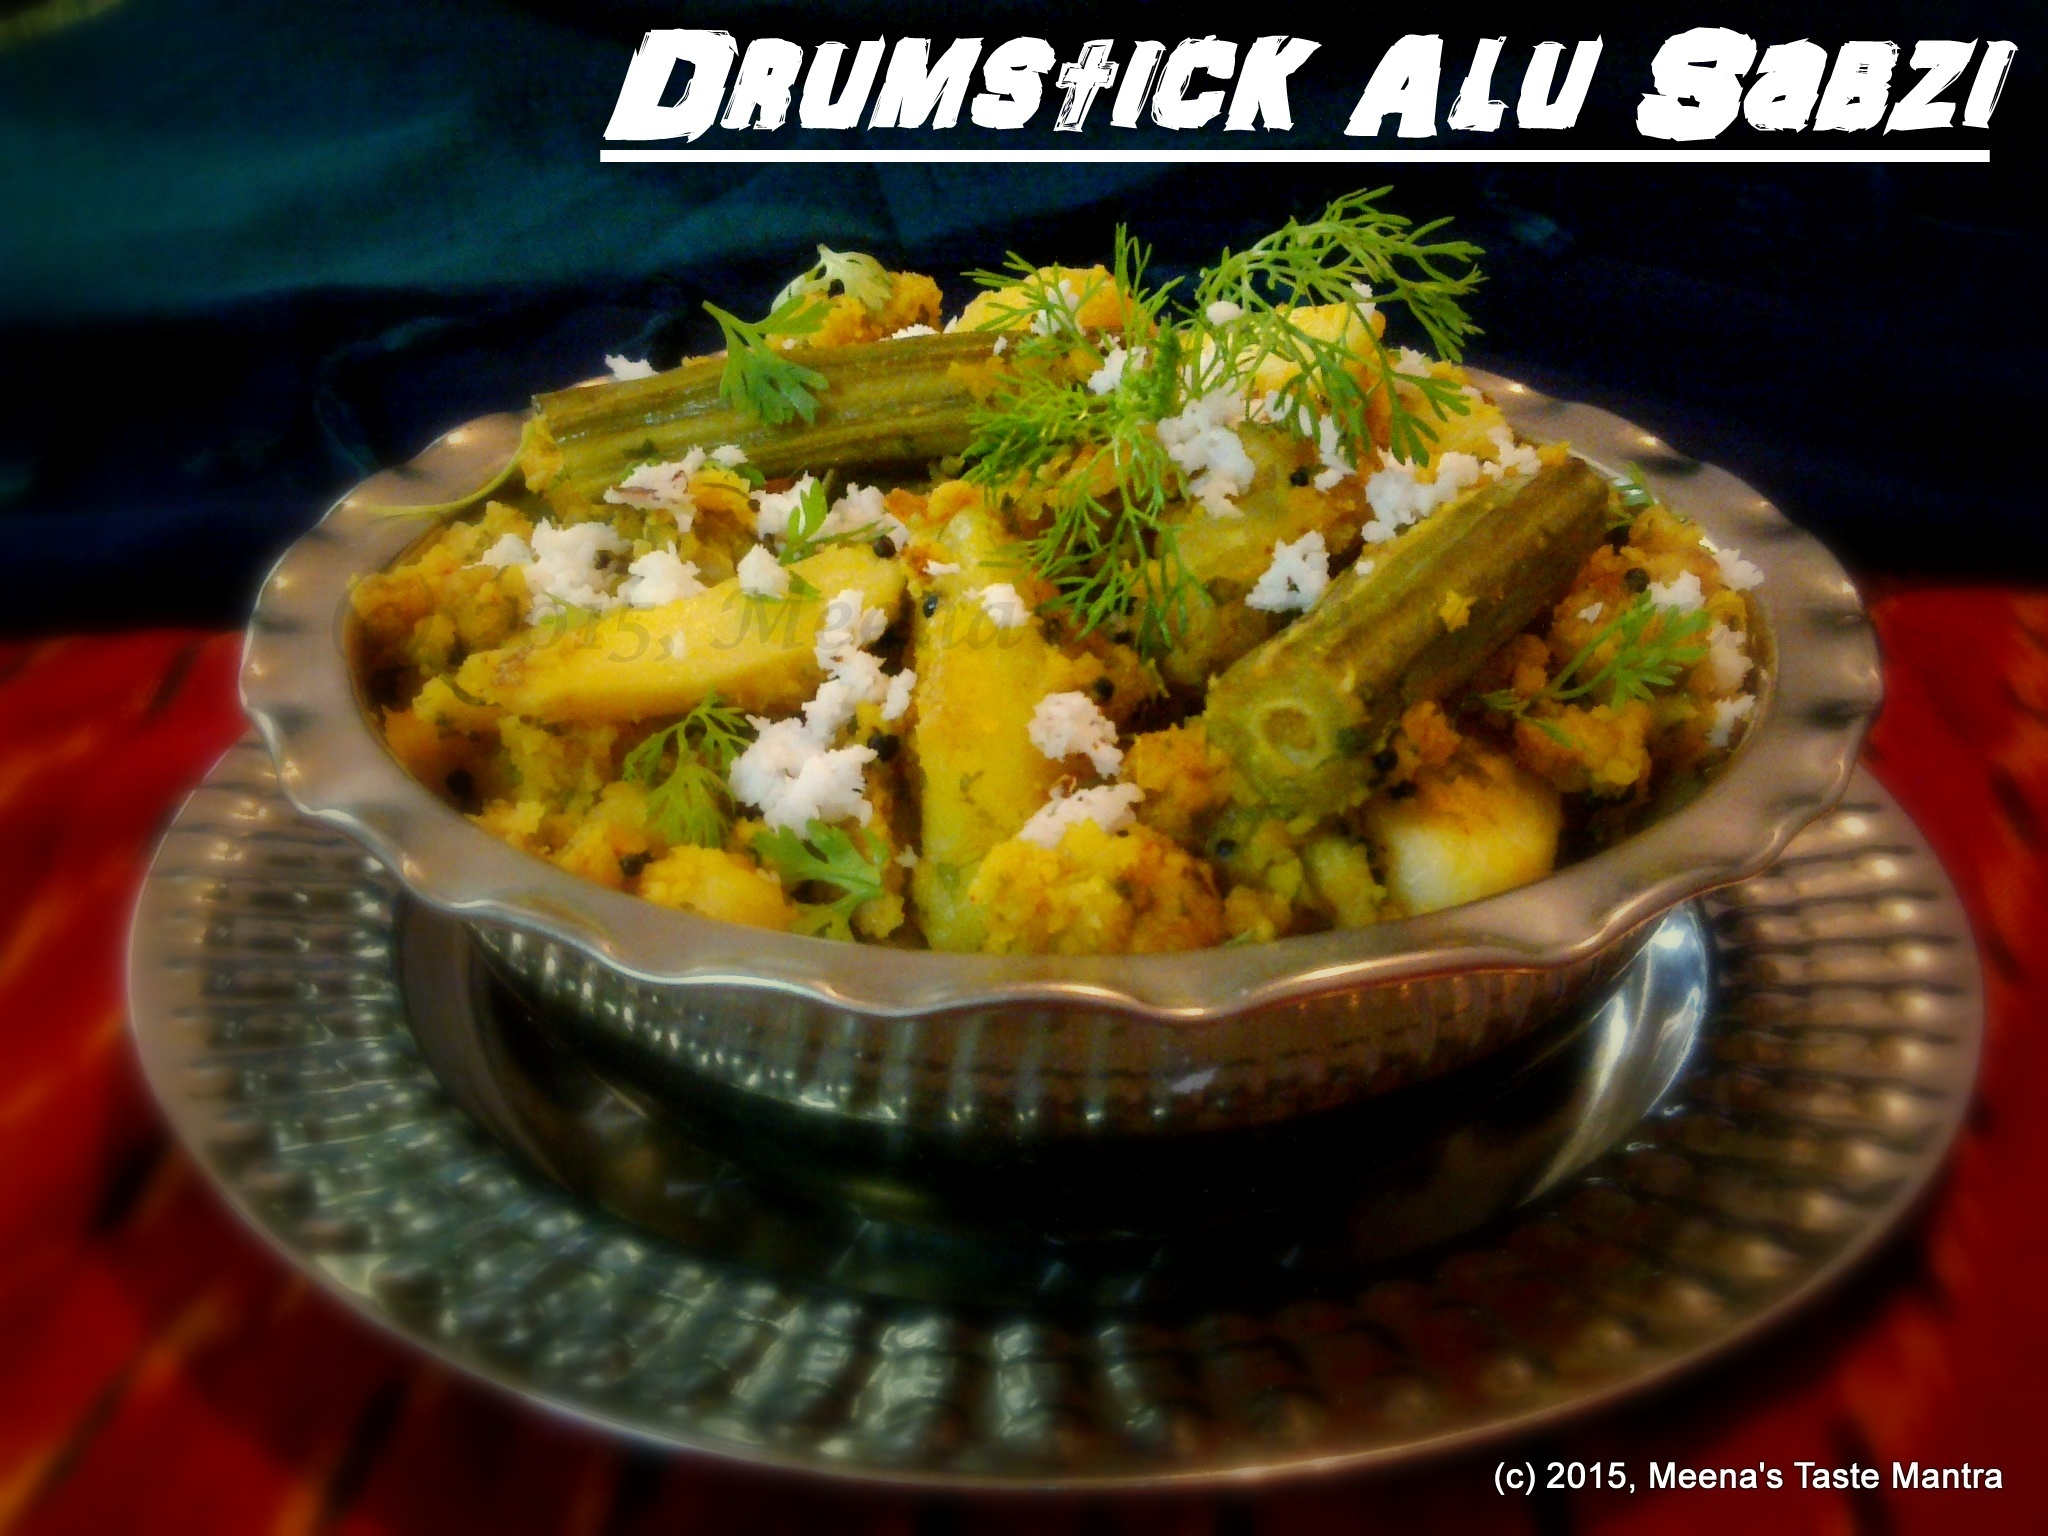 Drumstick Alu Sabzi - A traditional Gujrati dish made with a special Spice Mix!